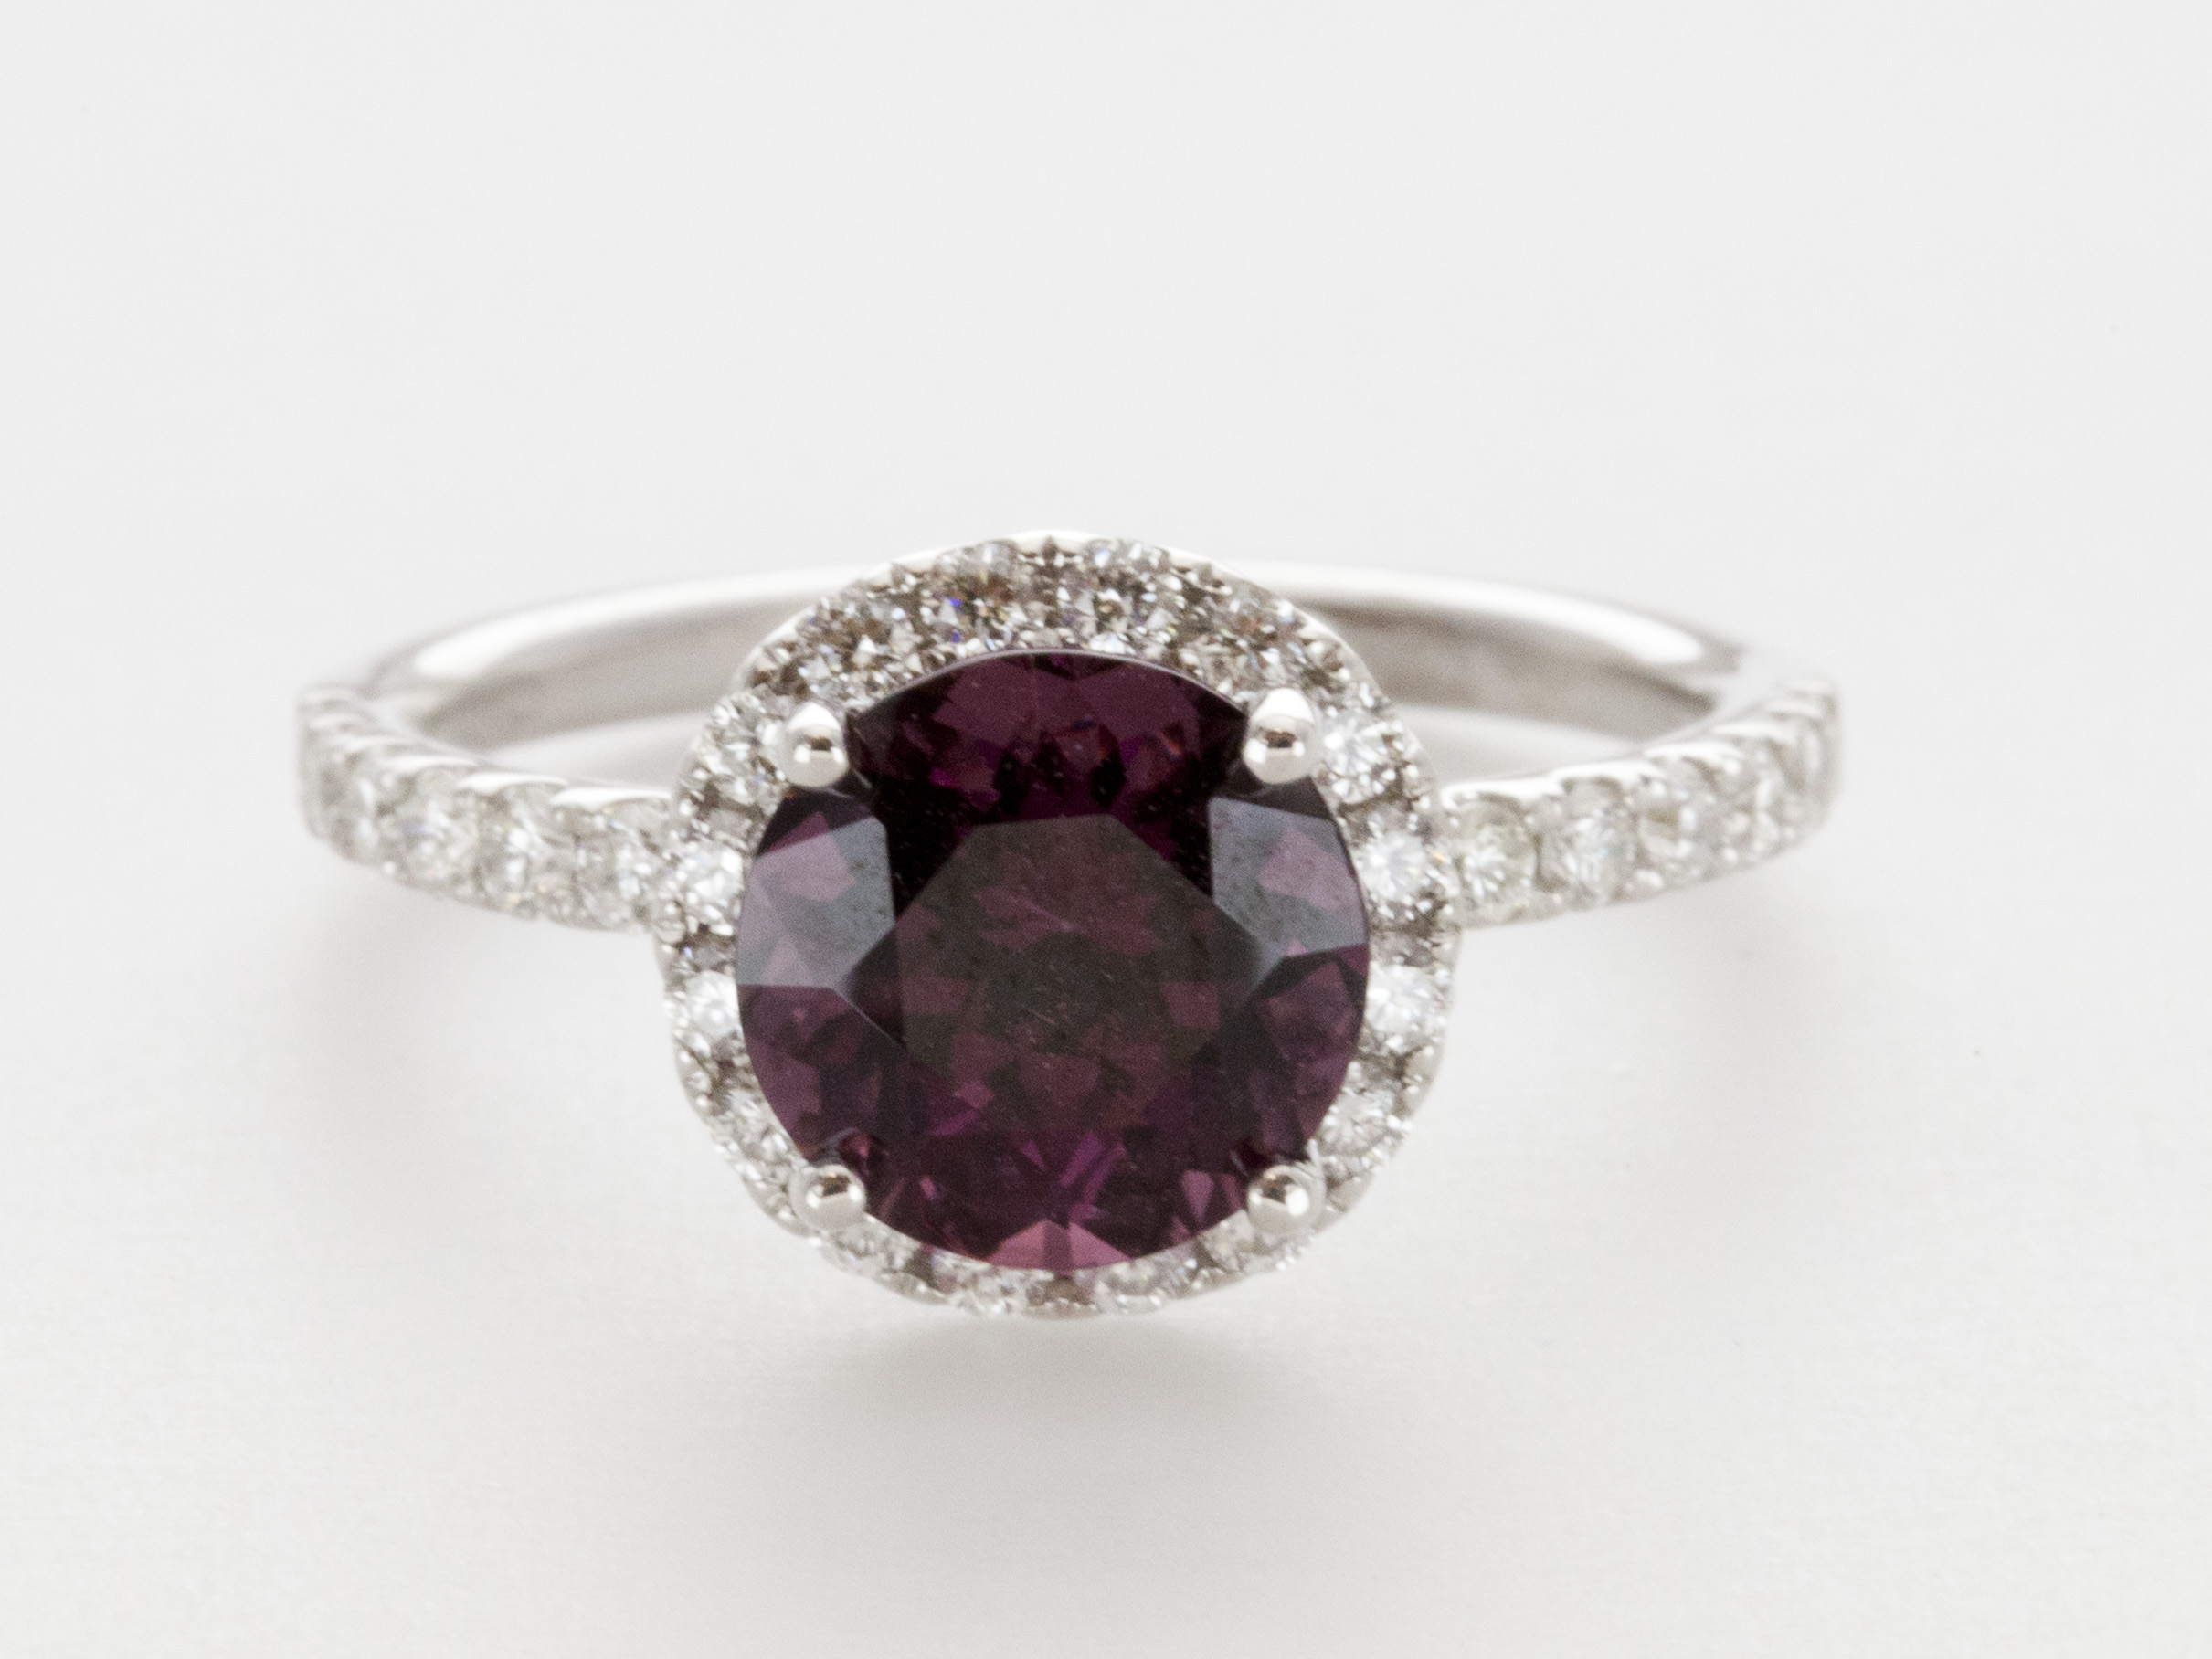 aria engagement rings rhodolite garnet silver sterling pin ring